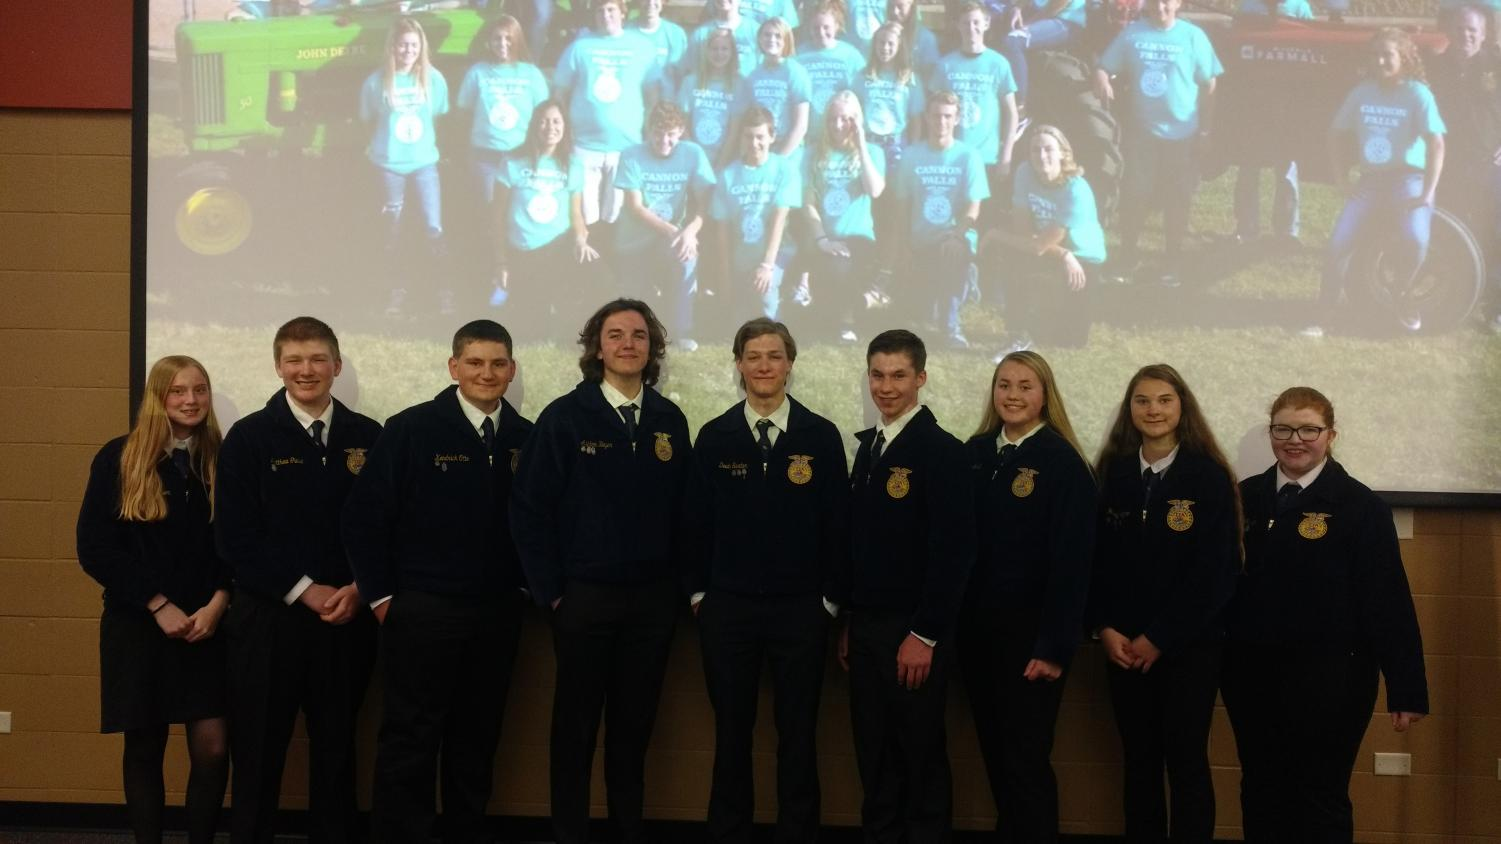 2019-2020 Chapter officers